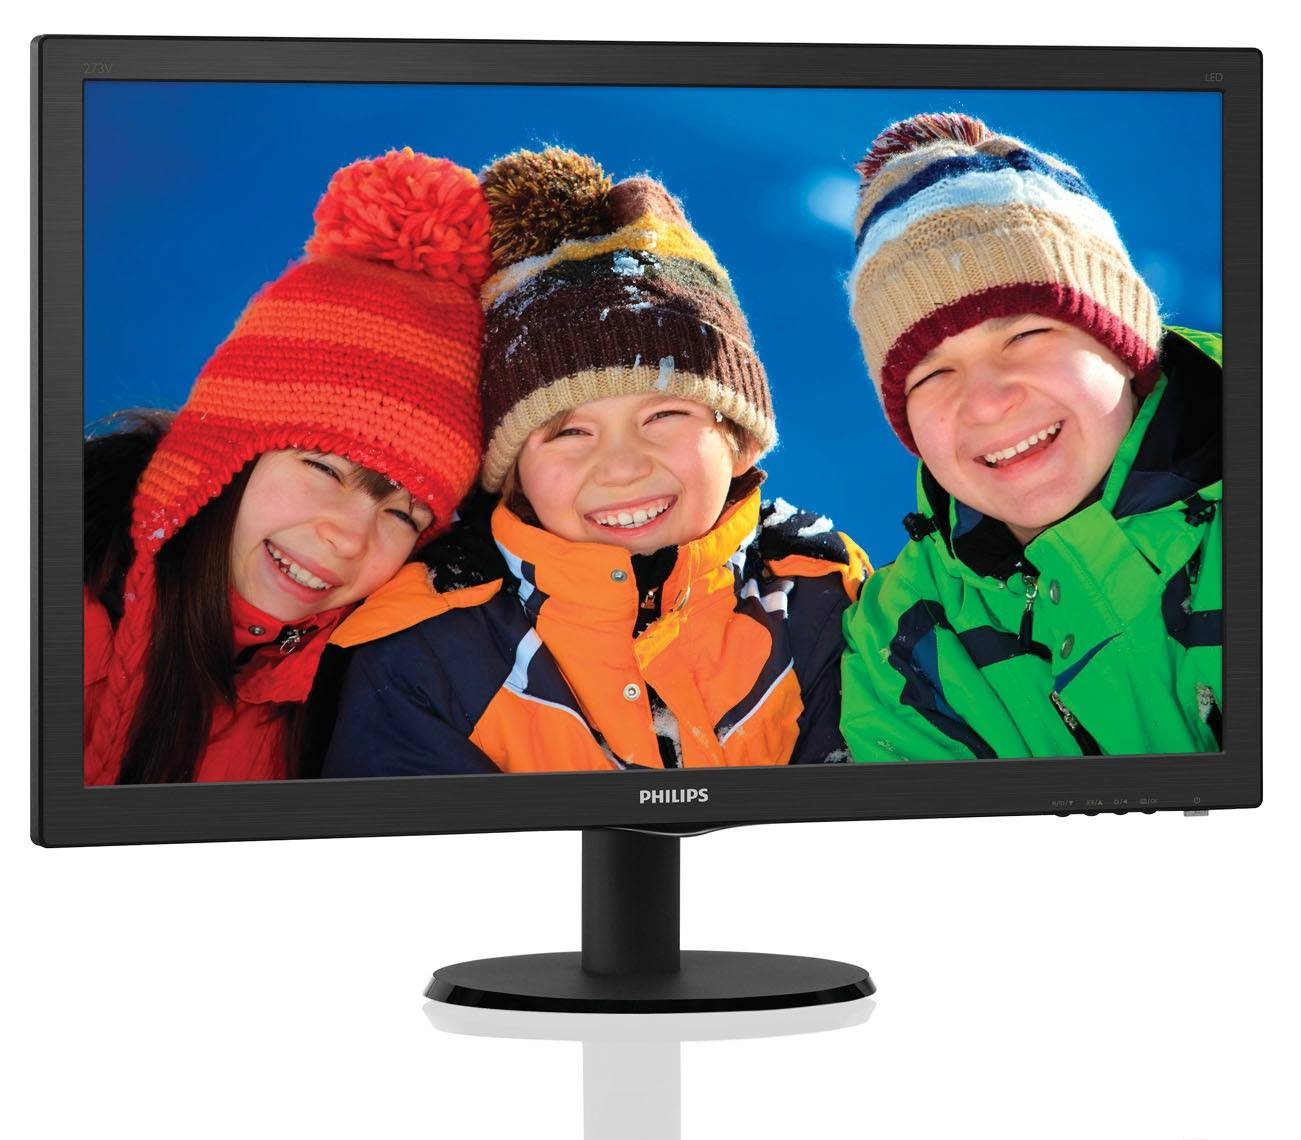 "МОНИТОР 27"" PHILIPS 273V5LHAB/00(01) Black (1920x1080, 1 ms, 170°/160°, 300 cd/m, 10M:1, +DVI, +HDMI, +MM)"